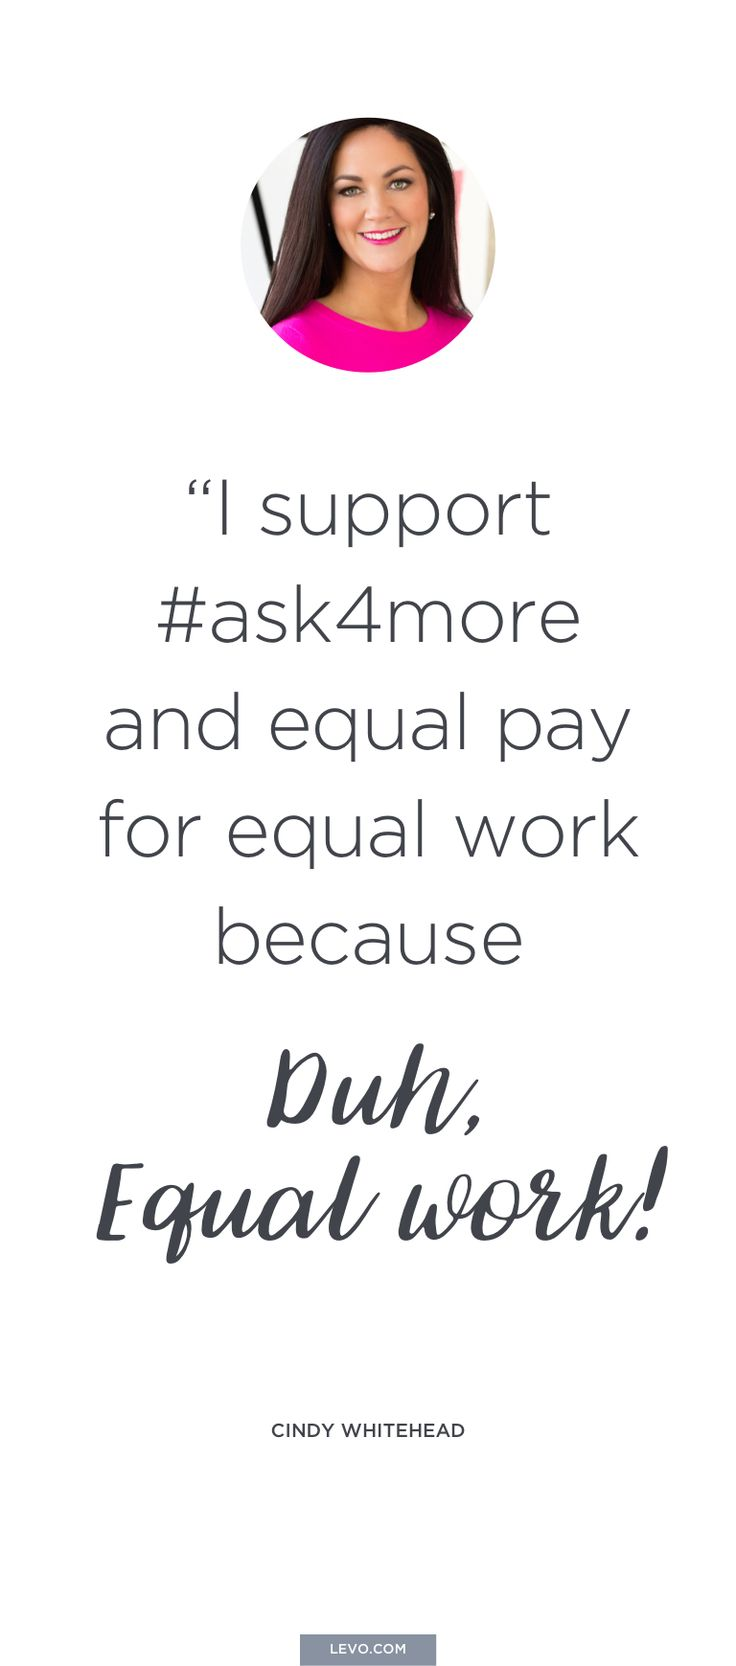 Cindy Whitehead - Quotes to Inspire you to #Ask4More on Equal Pay Day - www.levo.com/ask4more